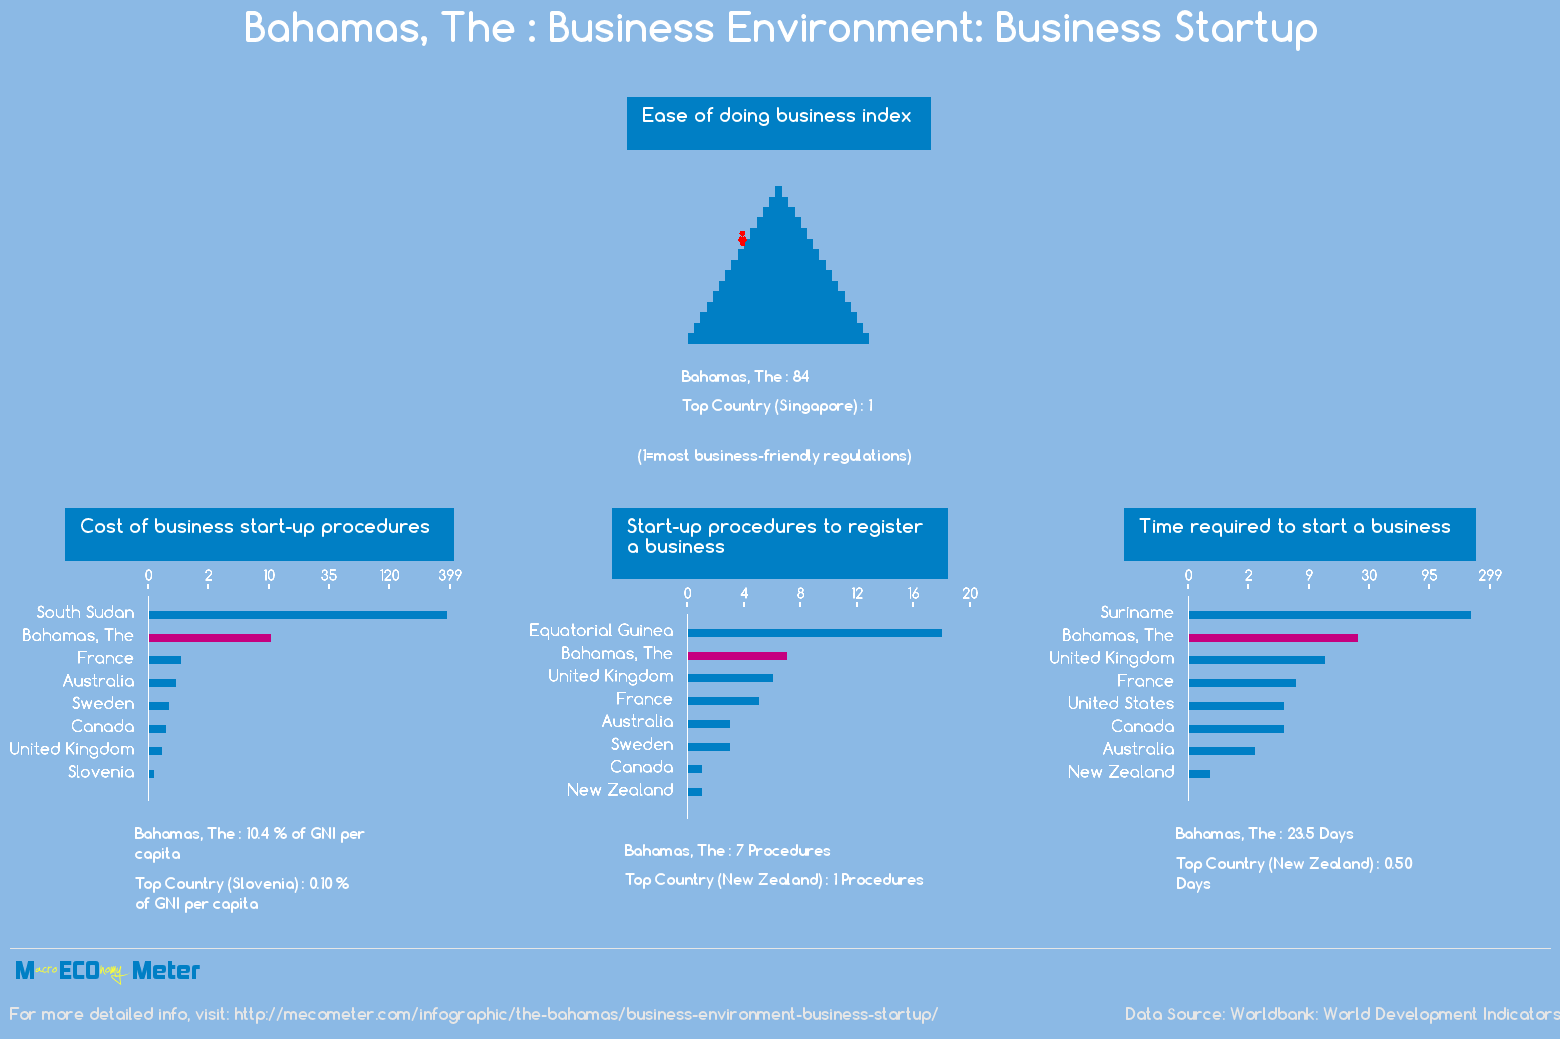 The Bahamas : Business Environment: Business Startup